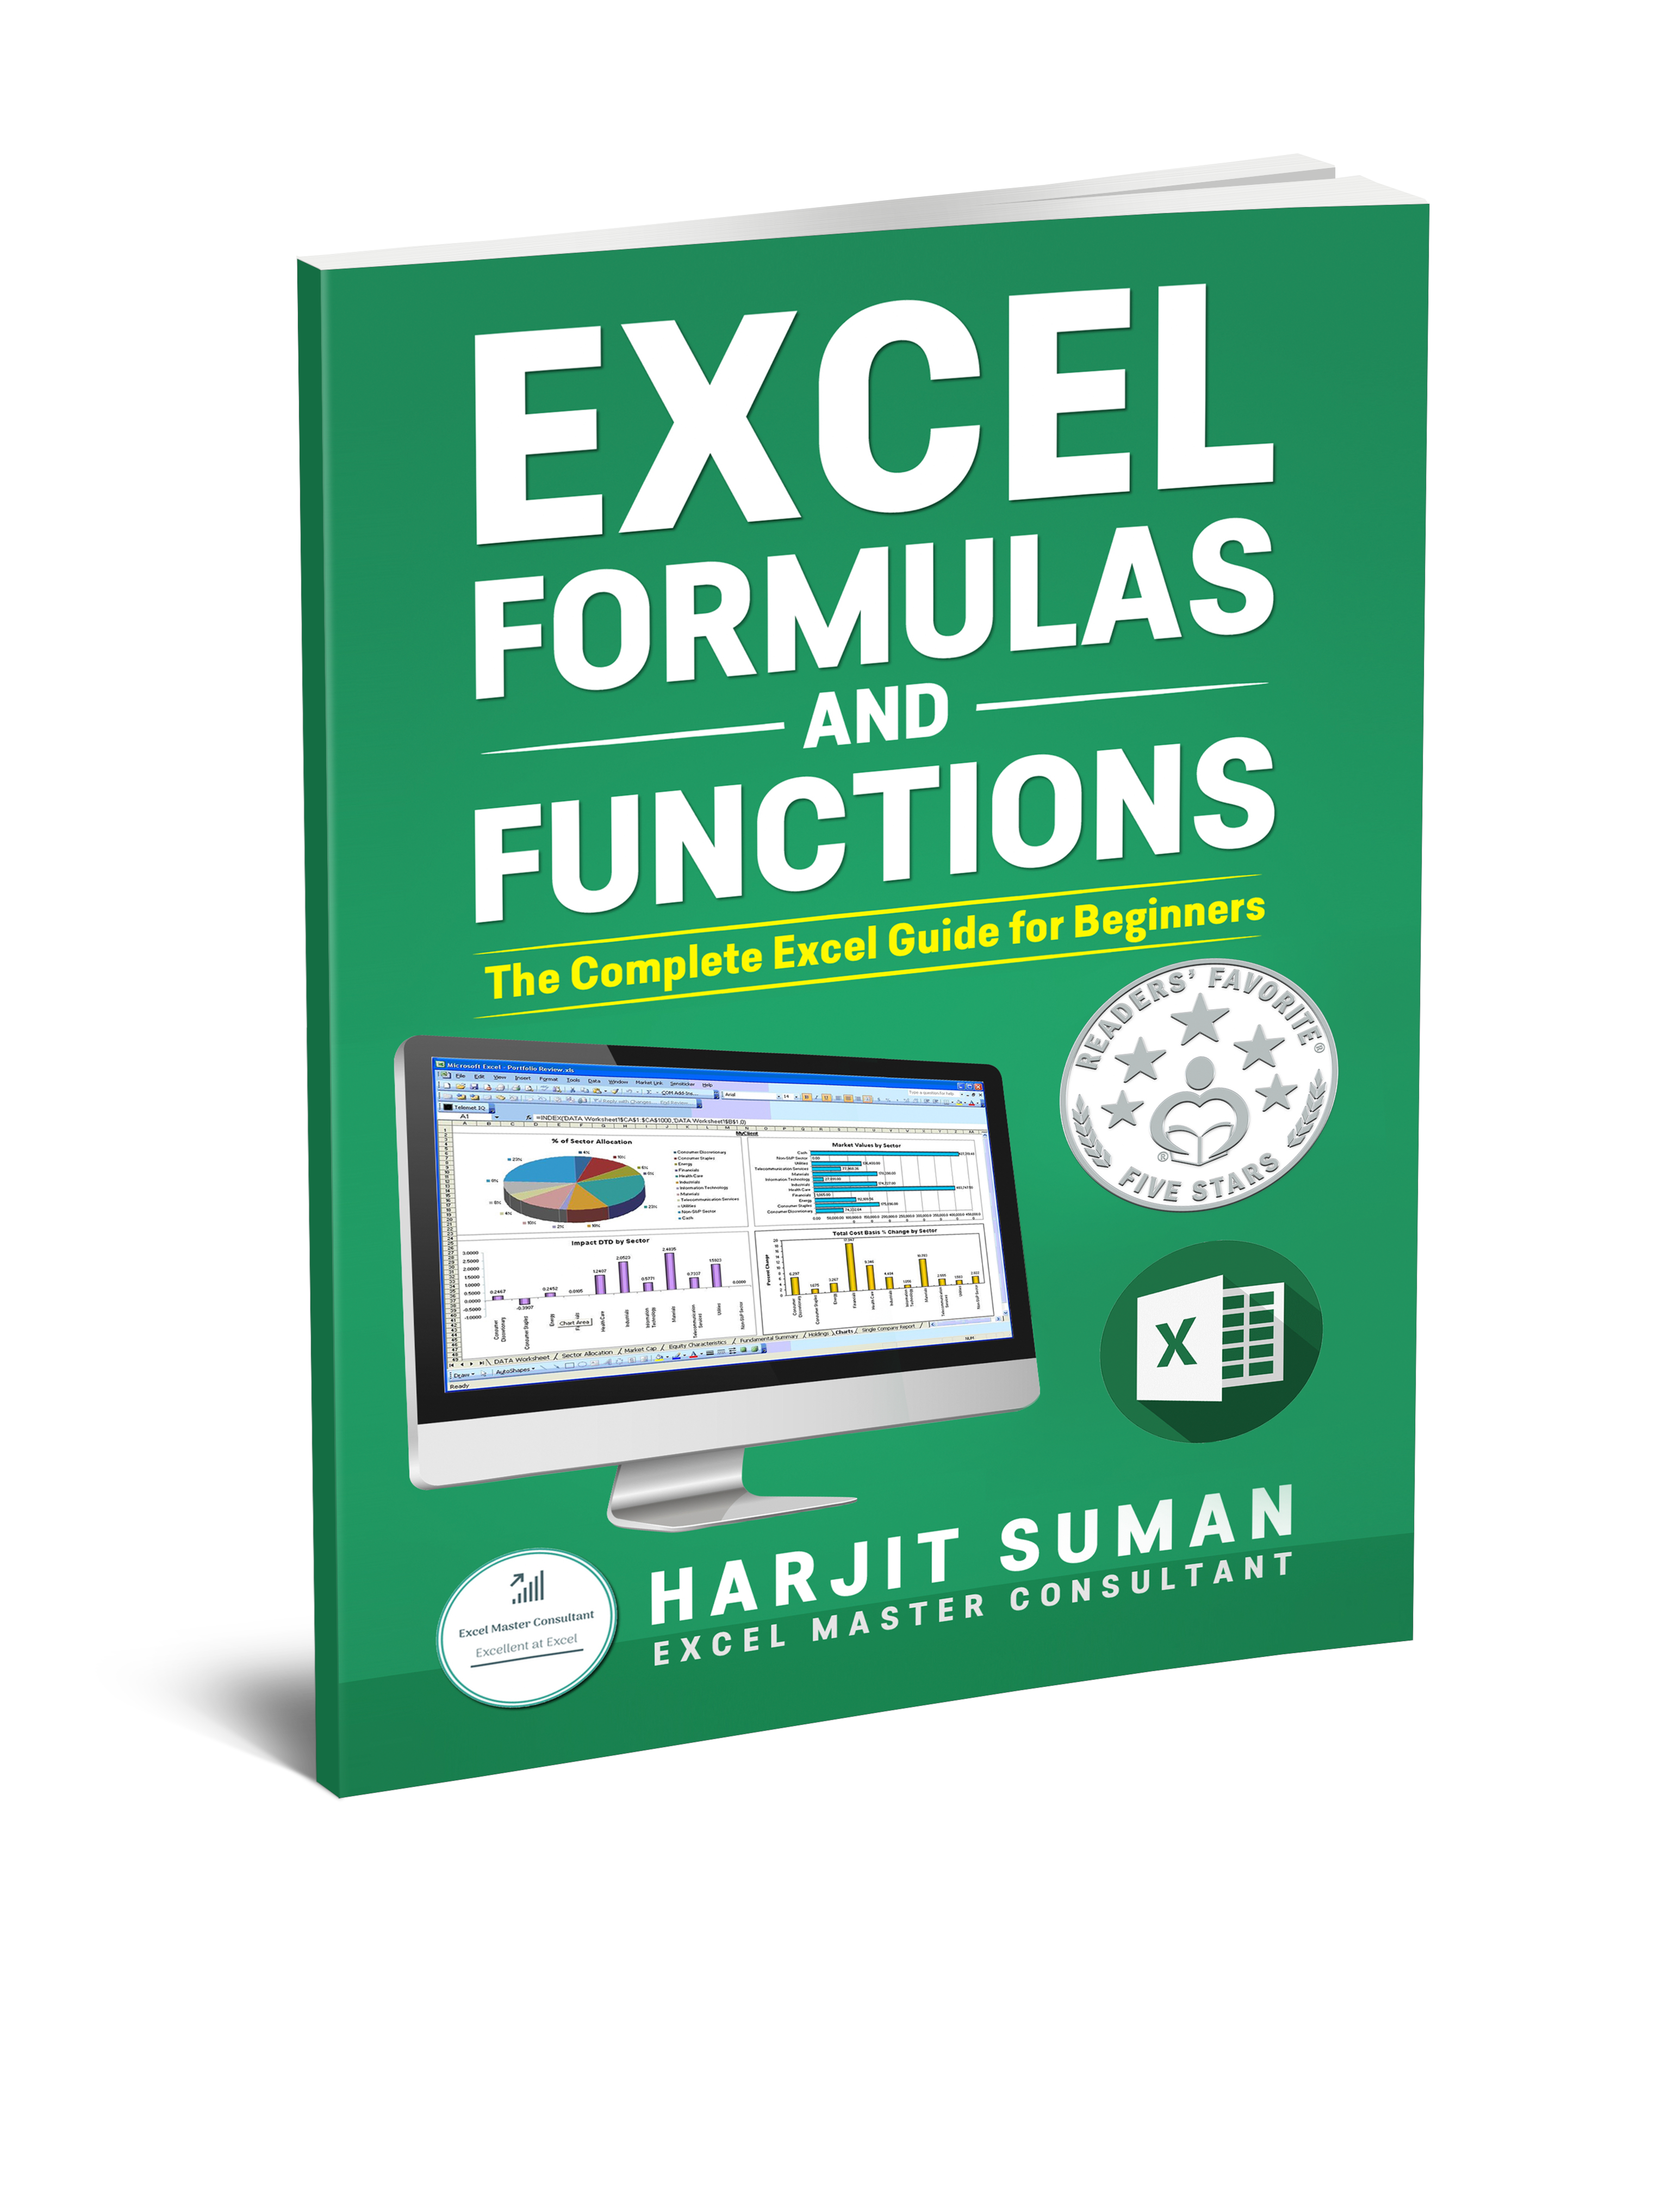 Excel Formulas and Functions: The Complete Excel Guide For Beginners book written by Harjit Suman